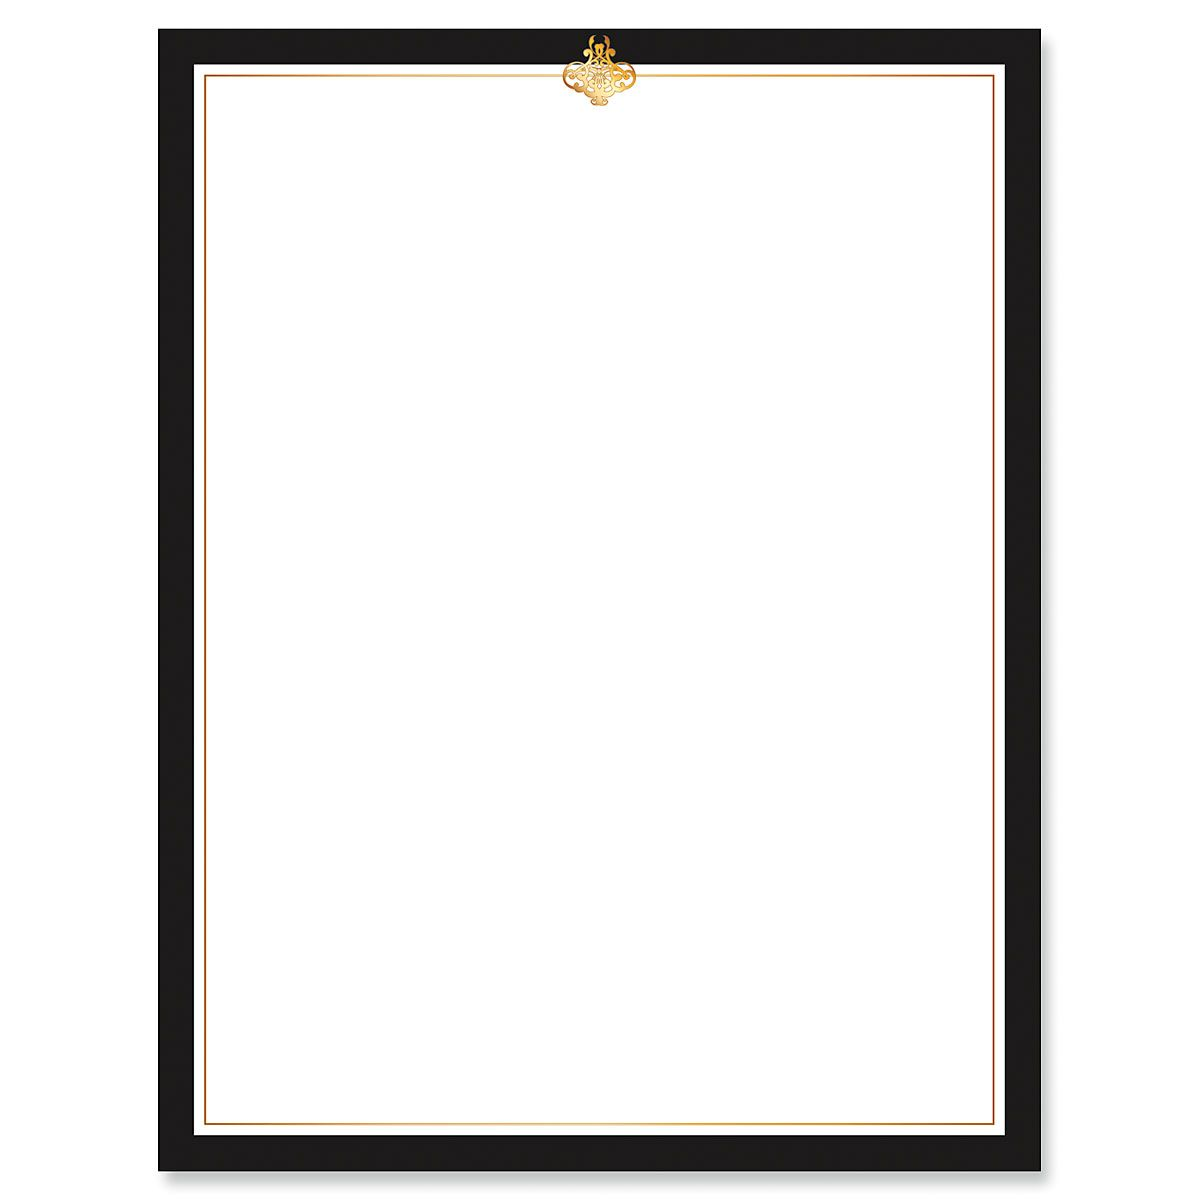 Calligraphy Frame Black and Gold Letter Papers